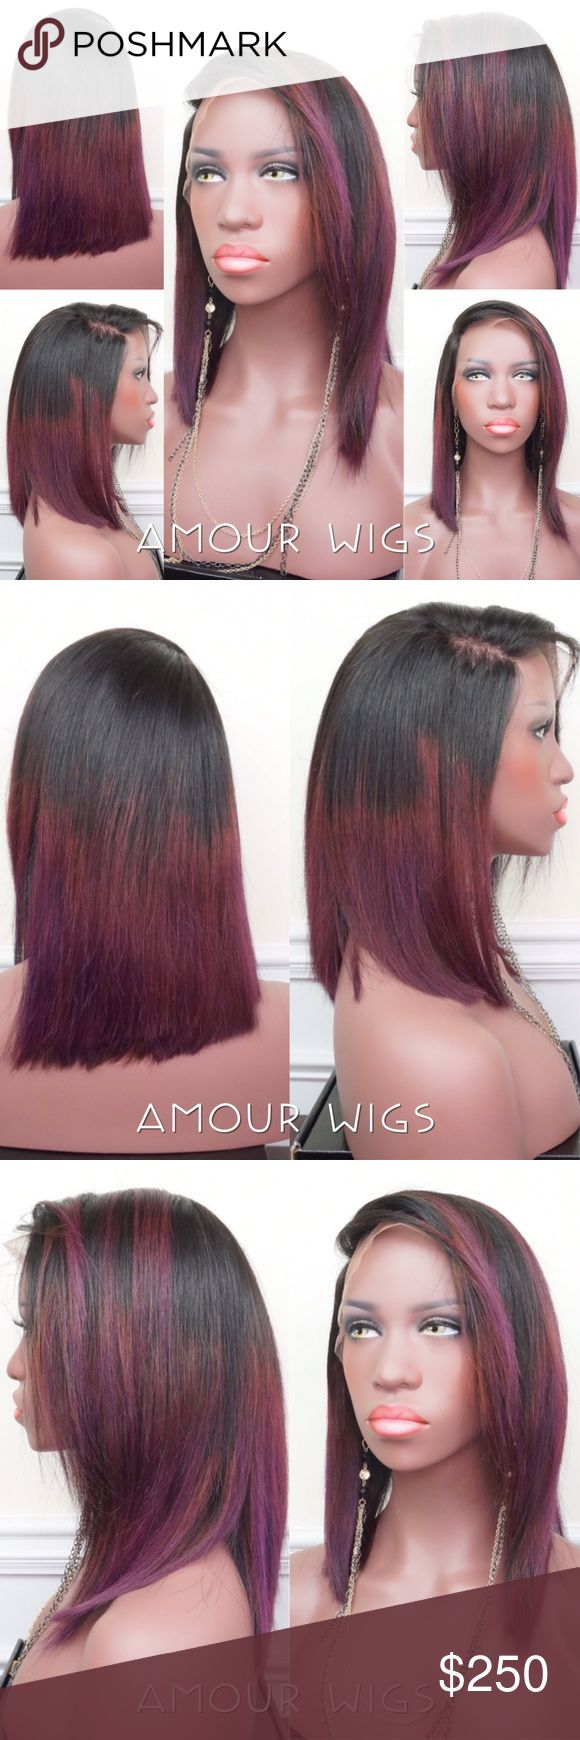 Brazilian Lace Frontal Bob Wig Purple Ombré Long Bob (Lace Frontal or Closure) Wig   Brazilian Custom Wig   12 inch   Slightly Pre-Plucked Hairline   13x4 lace frontal 12 inch   Custom Color   Can be made for 19 to 23 inch Head Circumference Size   Light-Medium Brown Tinted Lace   Baby Hairs   Wig Unit can be made on wig cap w/ adjustable straps or dome cap   4 wig combs & elastic band will be included in package   This unit is made with all lace, no wefts   Please allow up to 7 business…